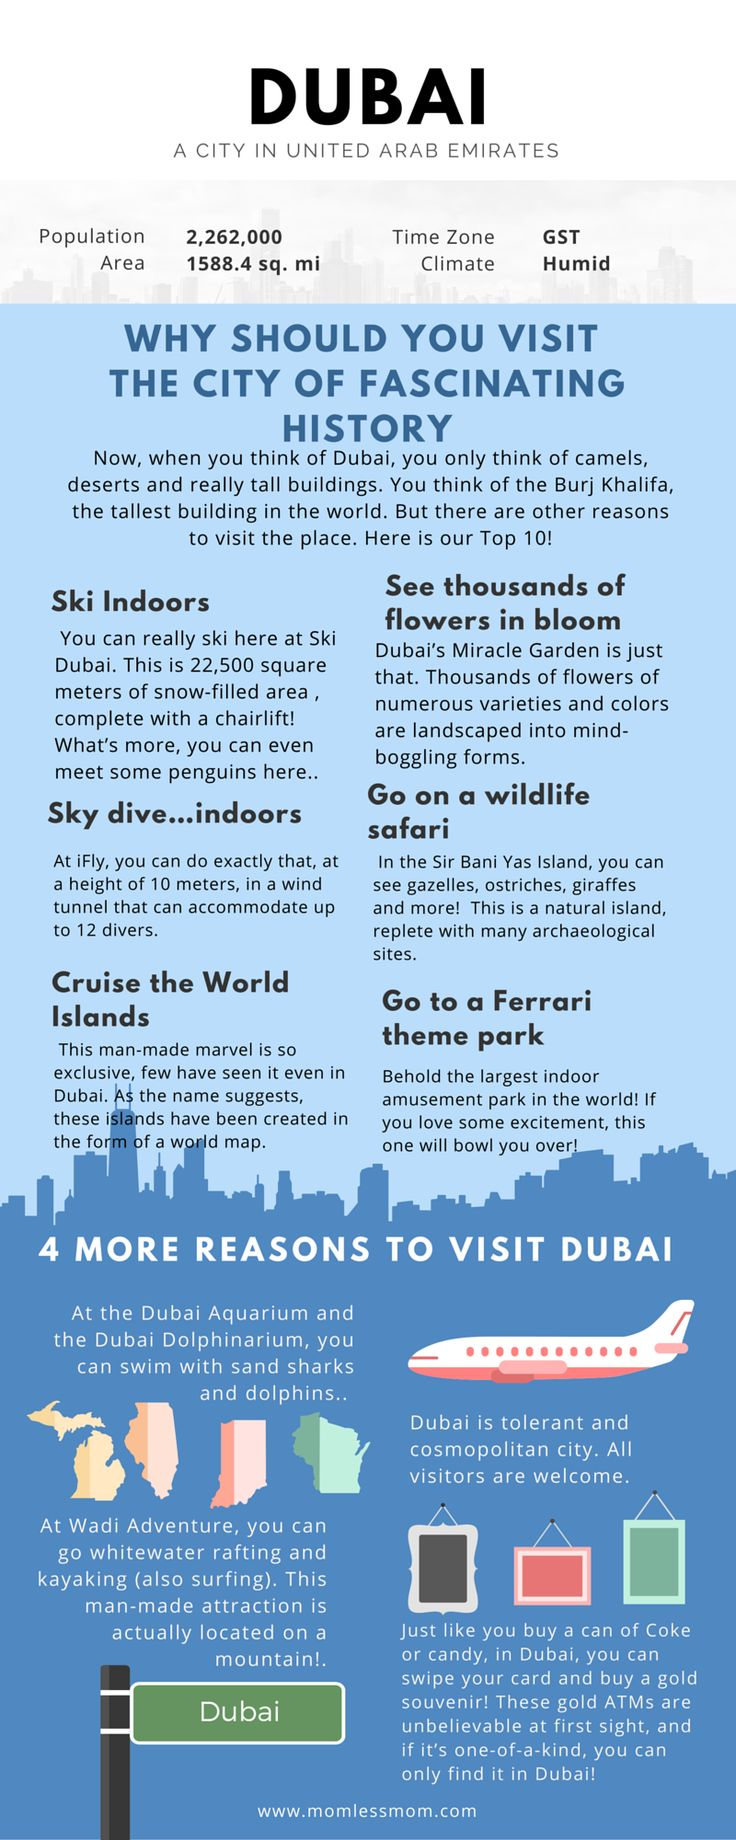 Here are the reasons to visit Dubai- You may be surprised reading some of the…